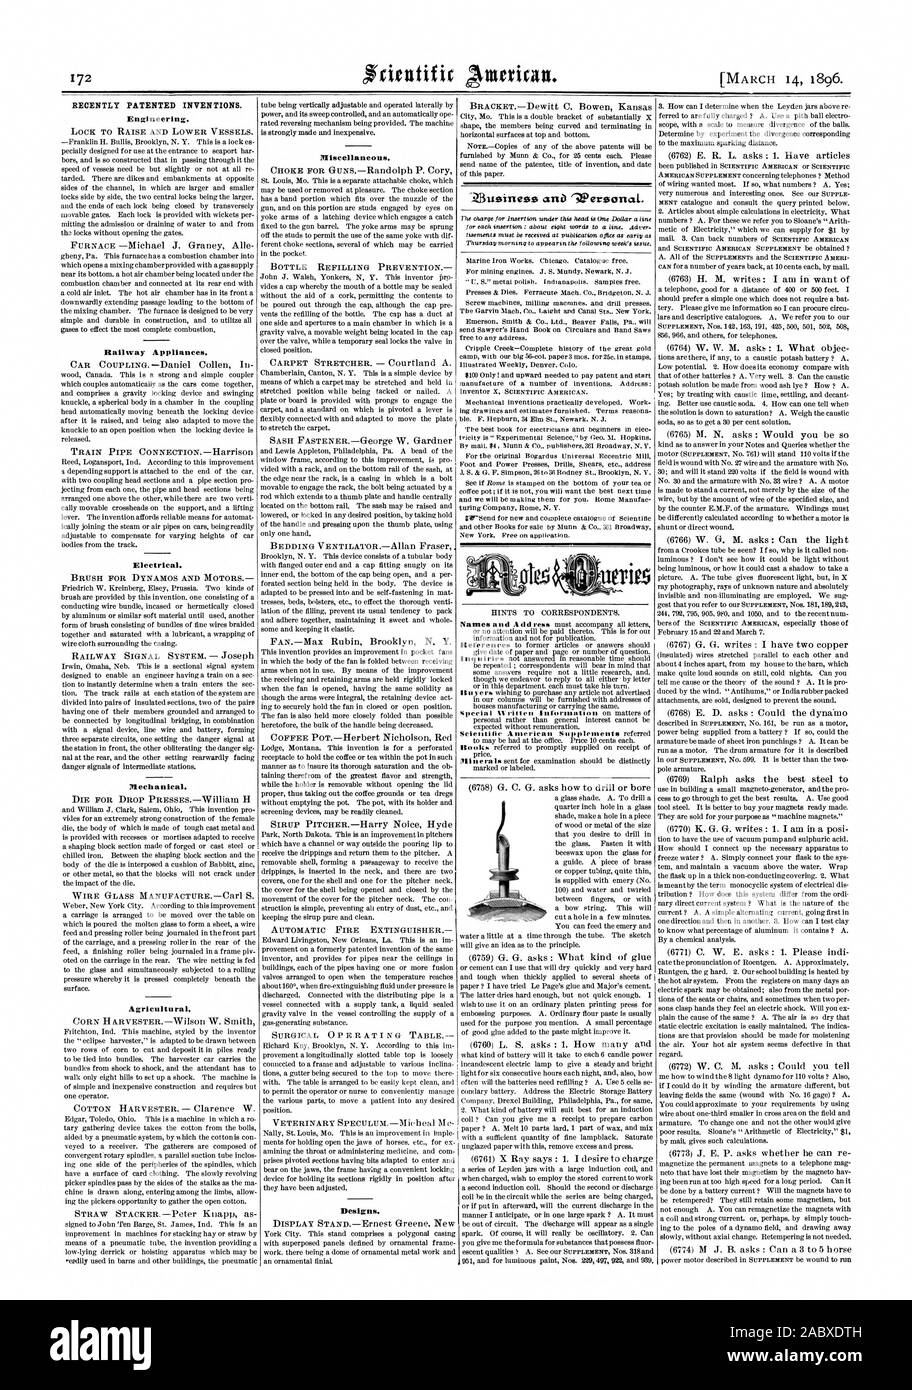 RECENTLY PATENTED INVENTIONS. Engineering. Railway Appliances. Electrical. Mechanical. Agricultural. Miscellaneous. Designs., scientific american, 96-03-11 Stock Photo